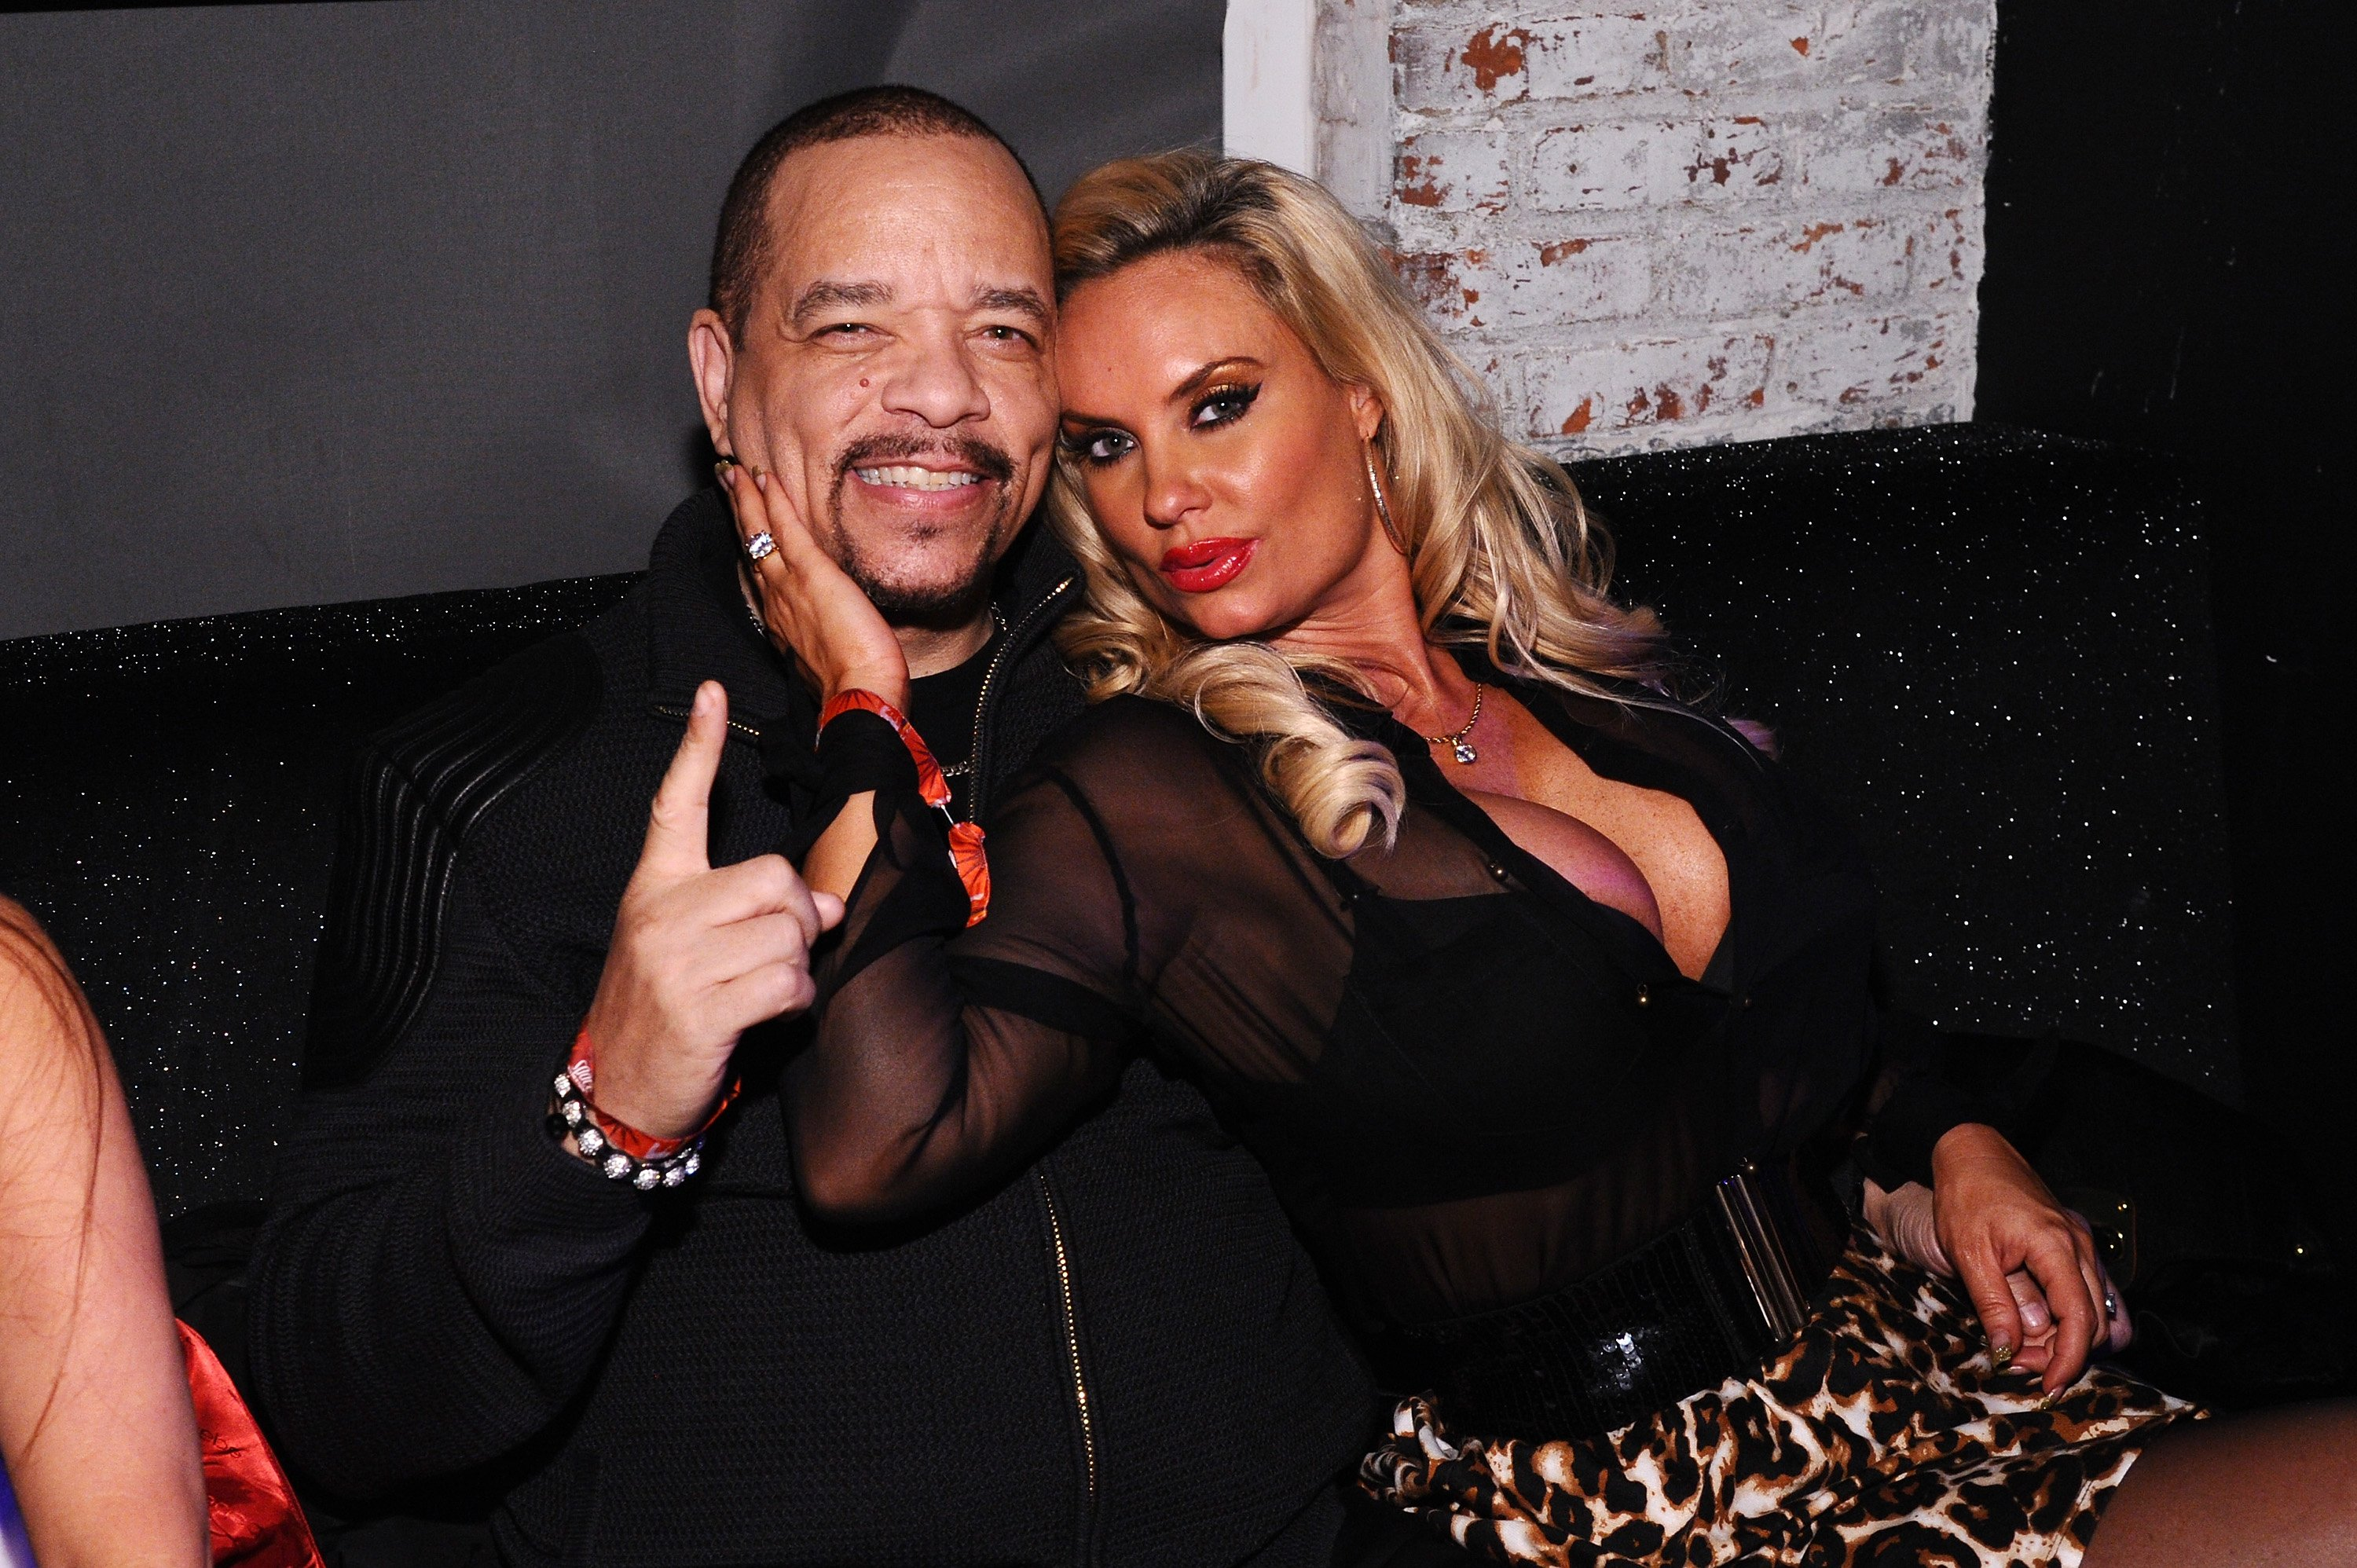 Ice T and Coco, Z100 Jingle Ball After Party 2014 Presented By GTA And Pierre Toma | Source: Getty Images